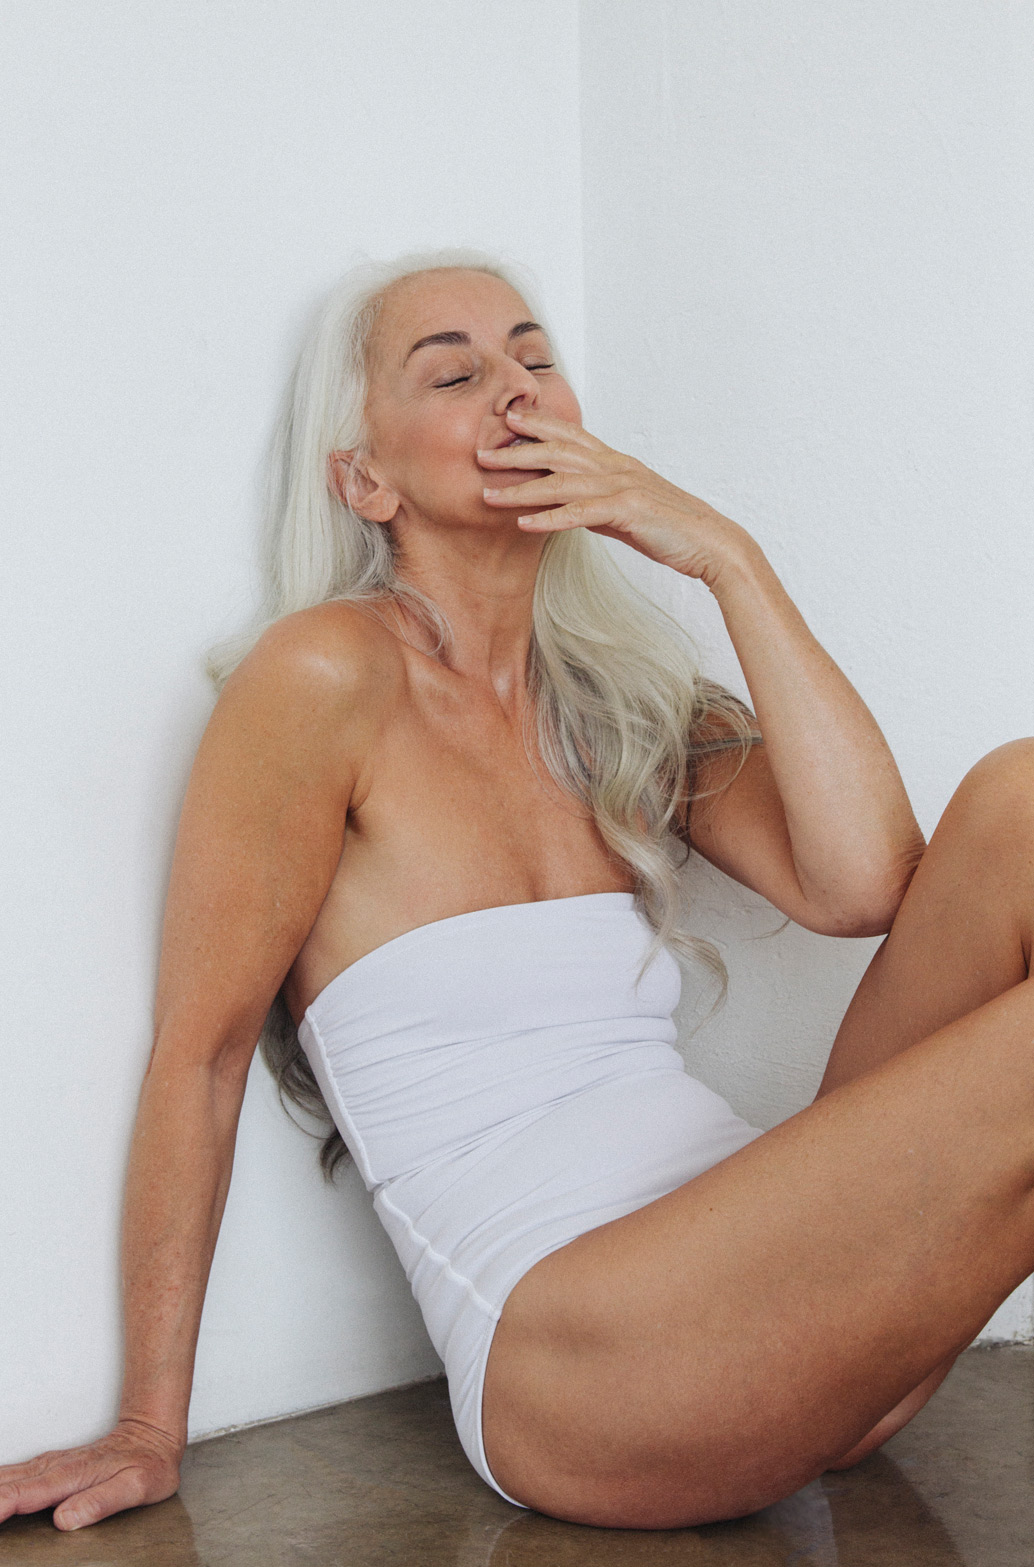 this 60 year old model is in the latest swimwear campaign